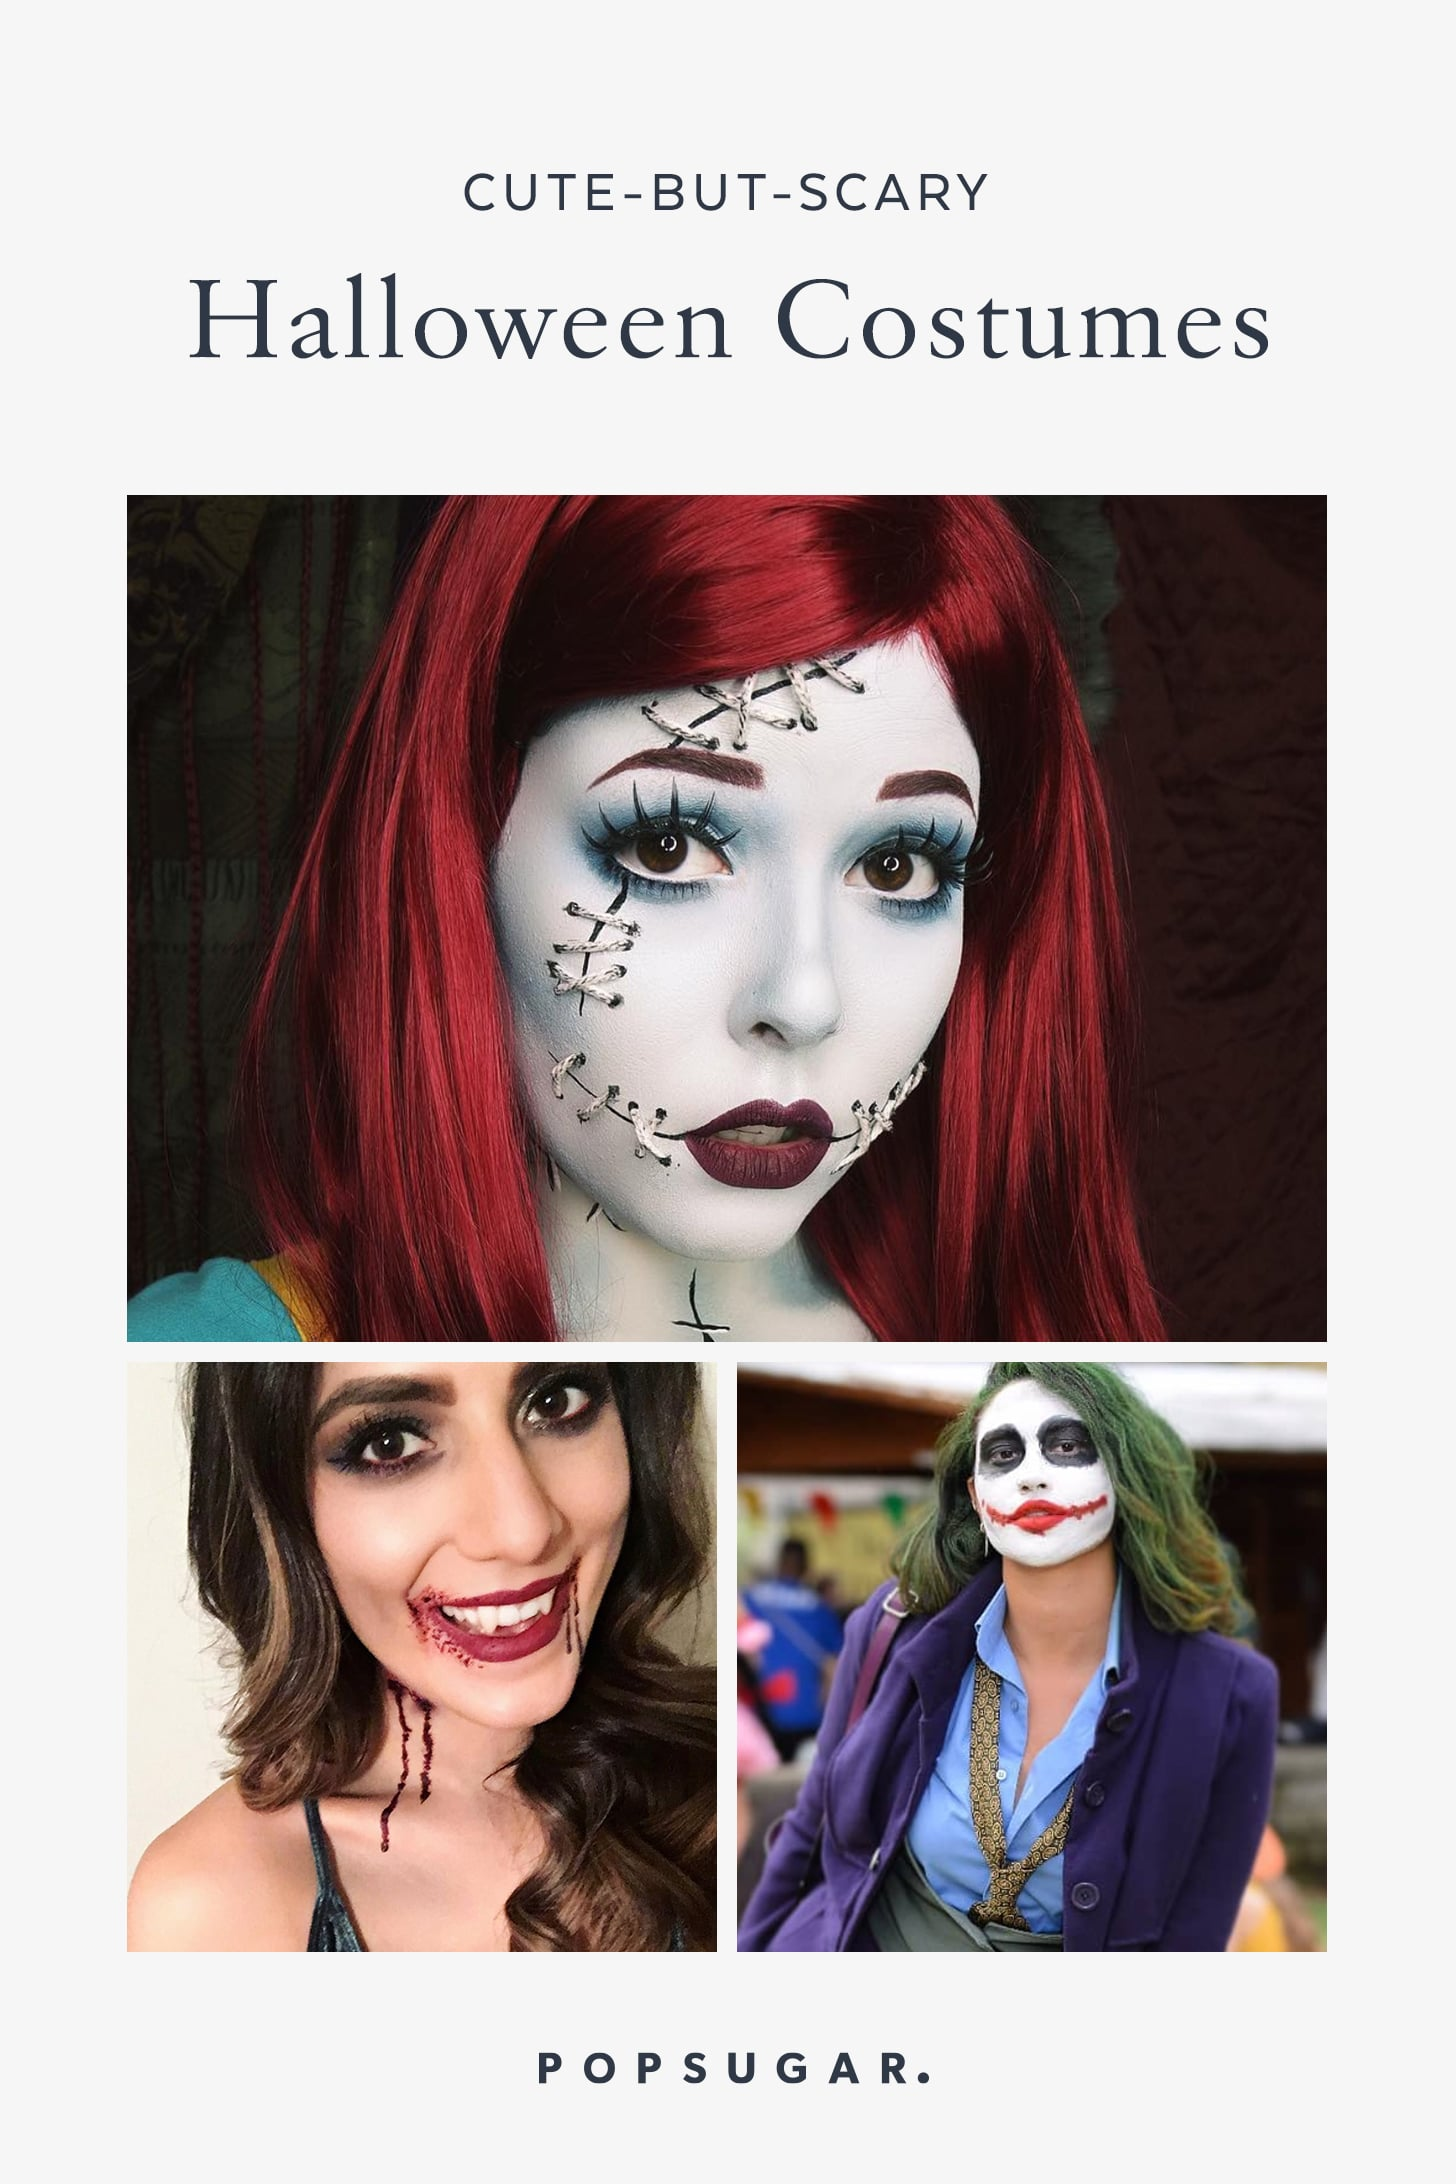 Creepy But Cute Halloween Costumes.Cute But Scary Halloween Costumes Popsugar Love Sex